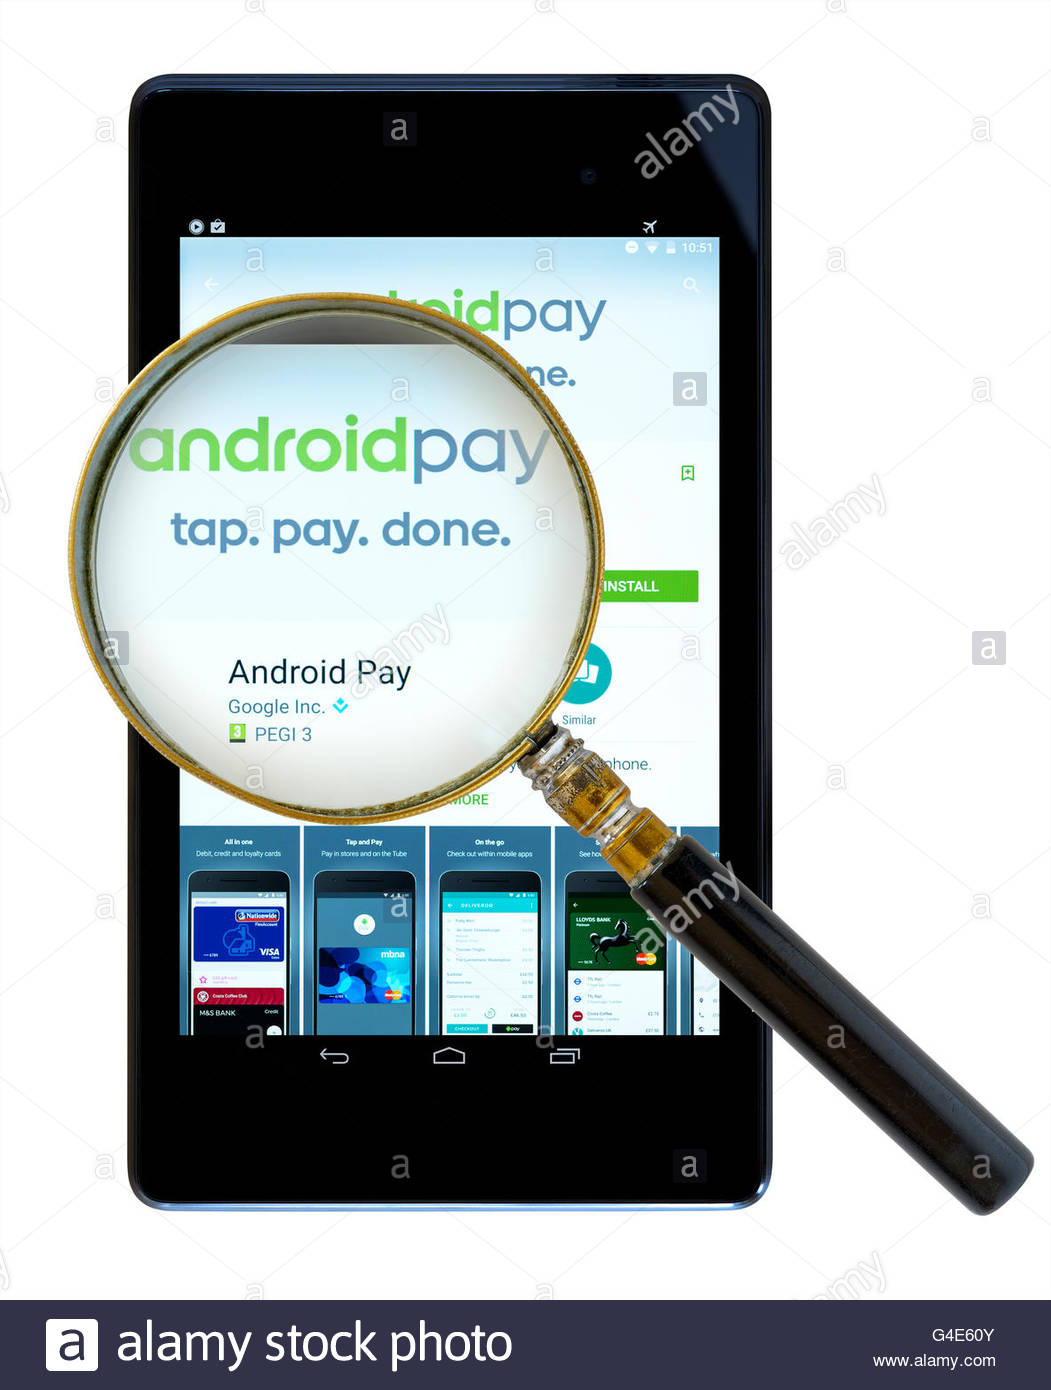 Android Pay digital wallet app shown on a tablet computer